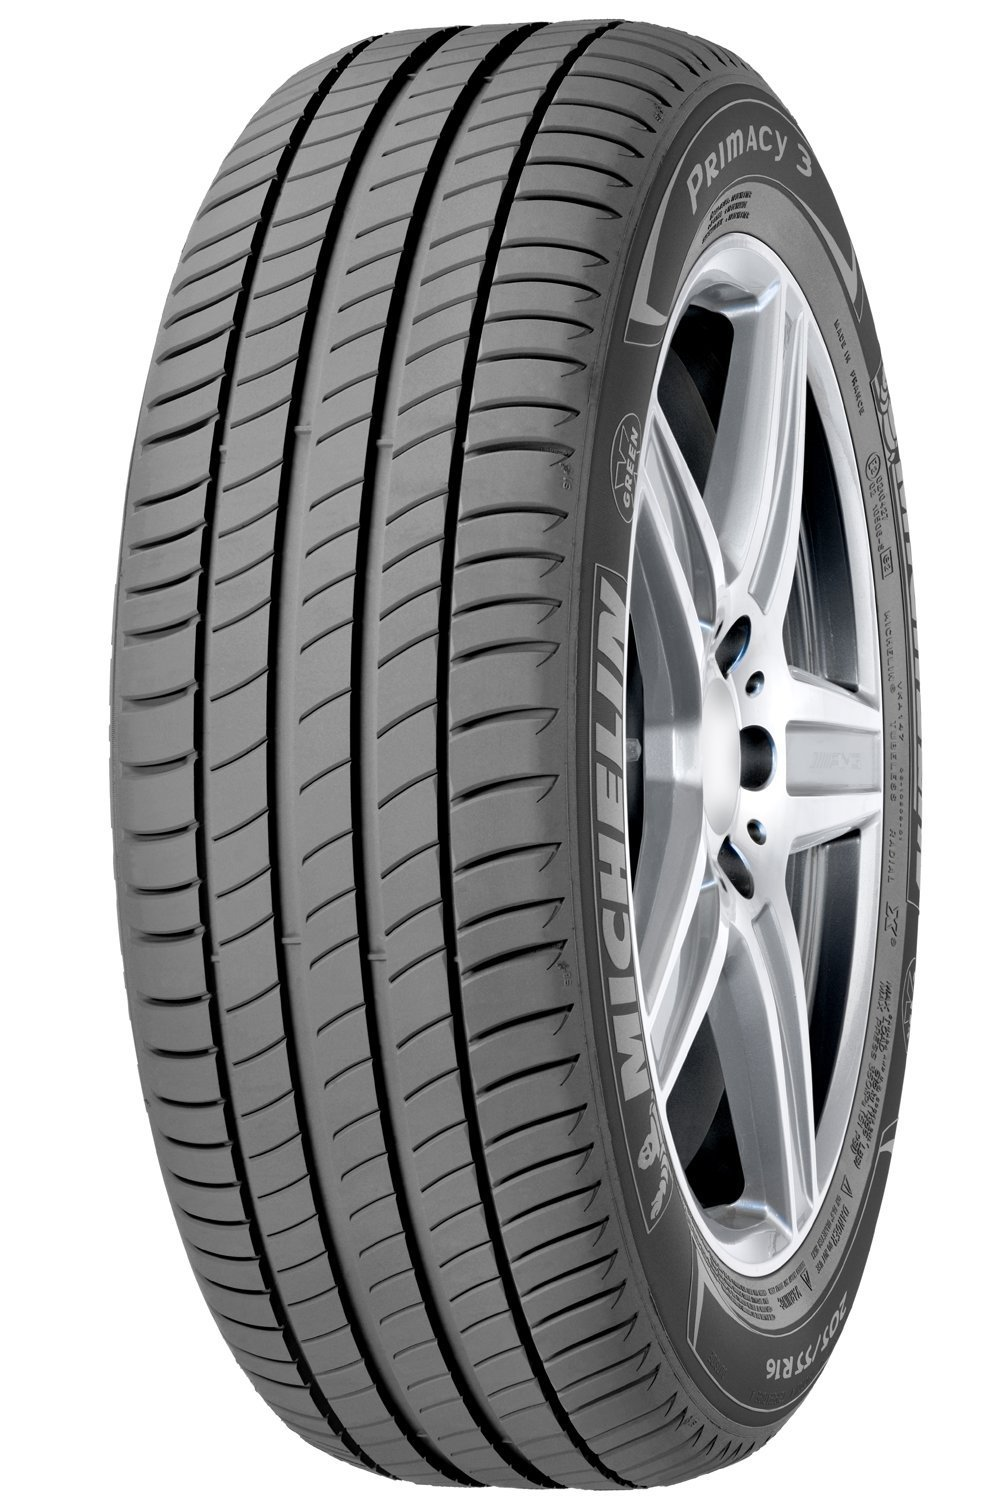 Anvelopa vara MICHELIN PRIMACY 3 ZP GRNX 245/40 R18 93Y